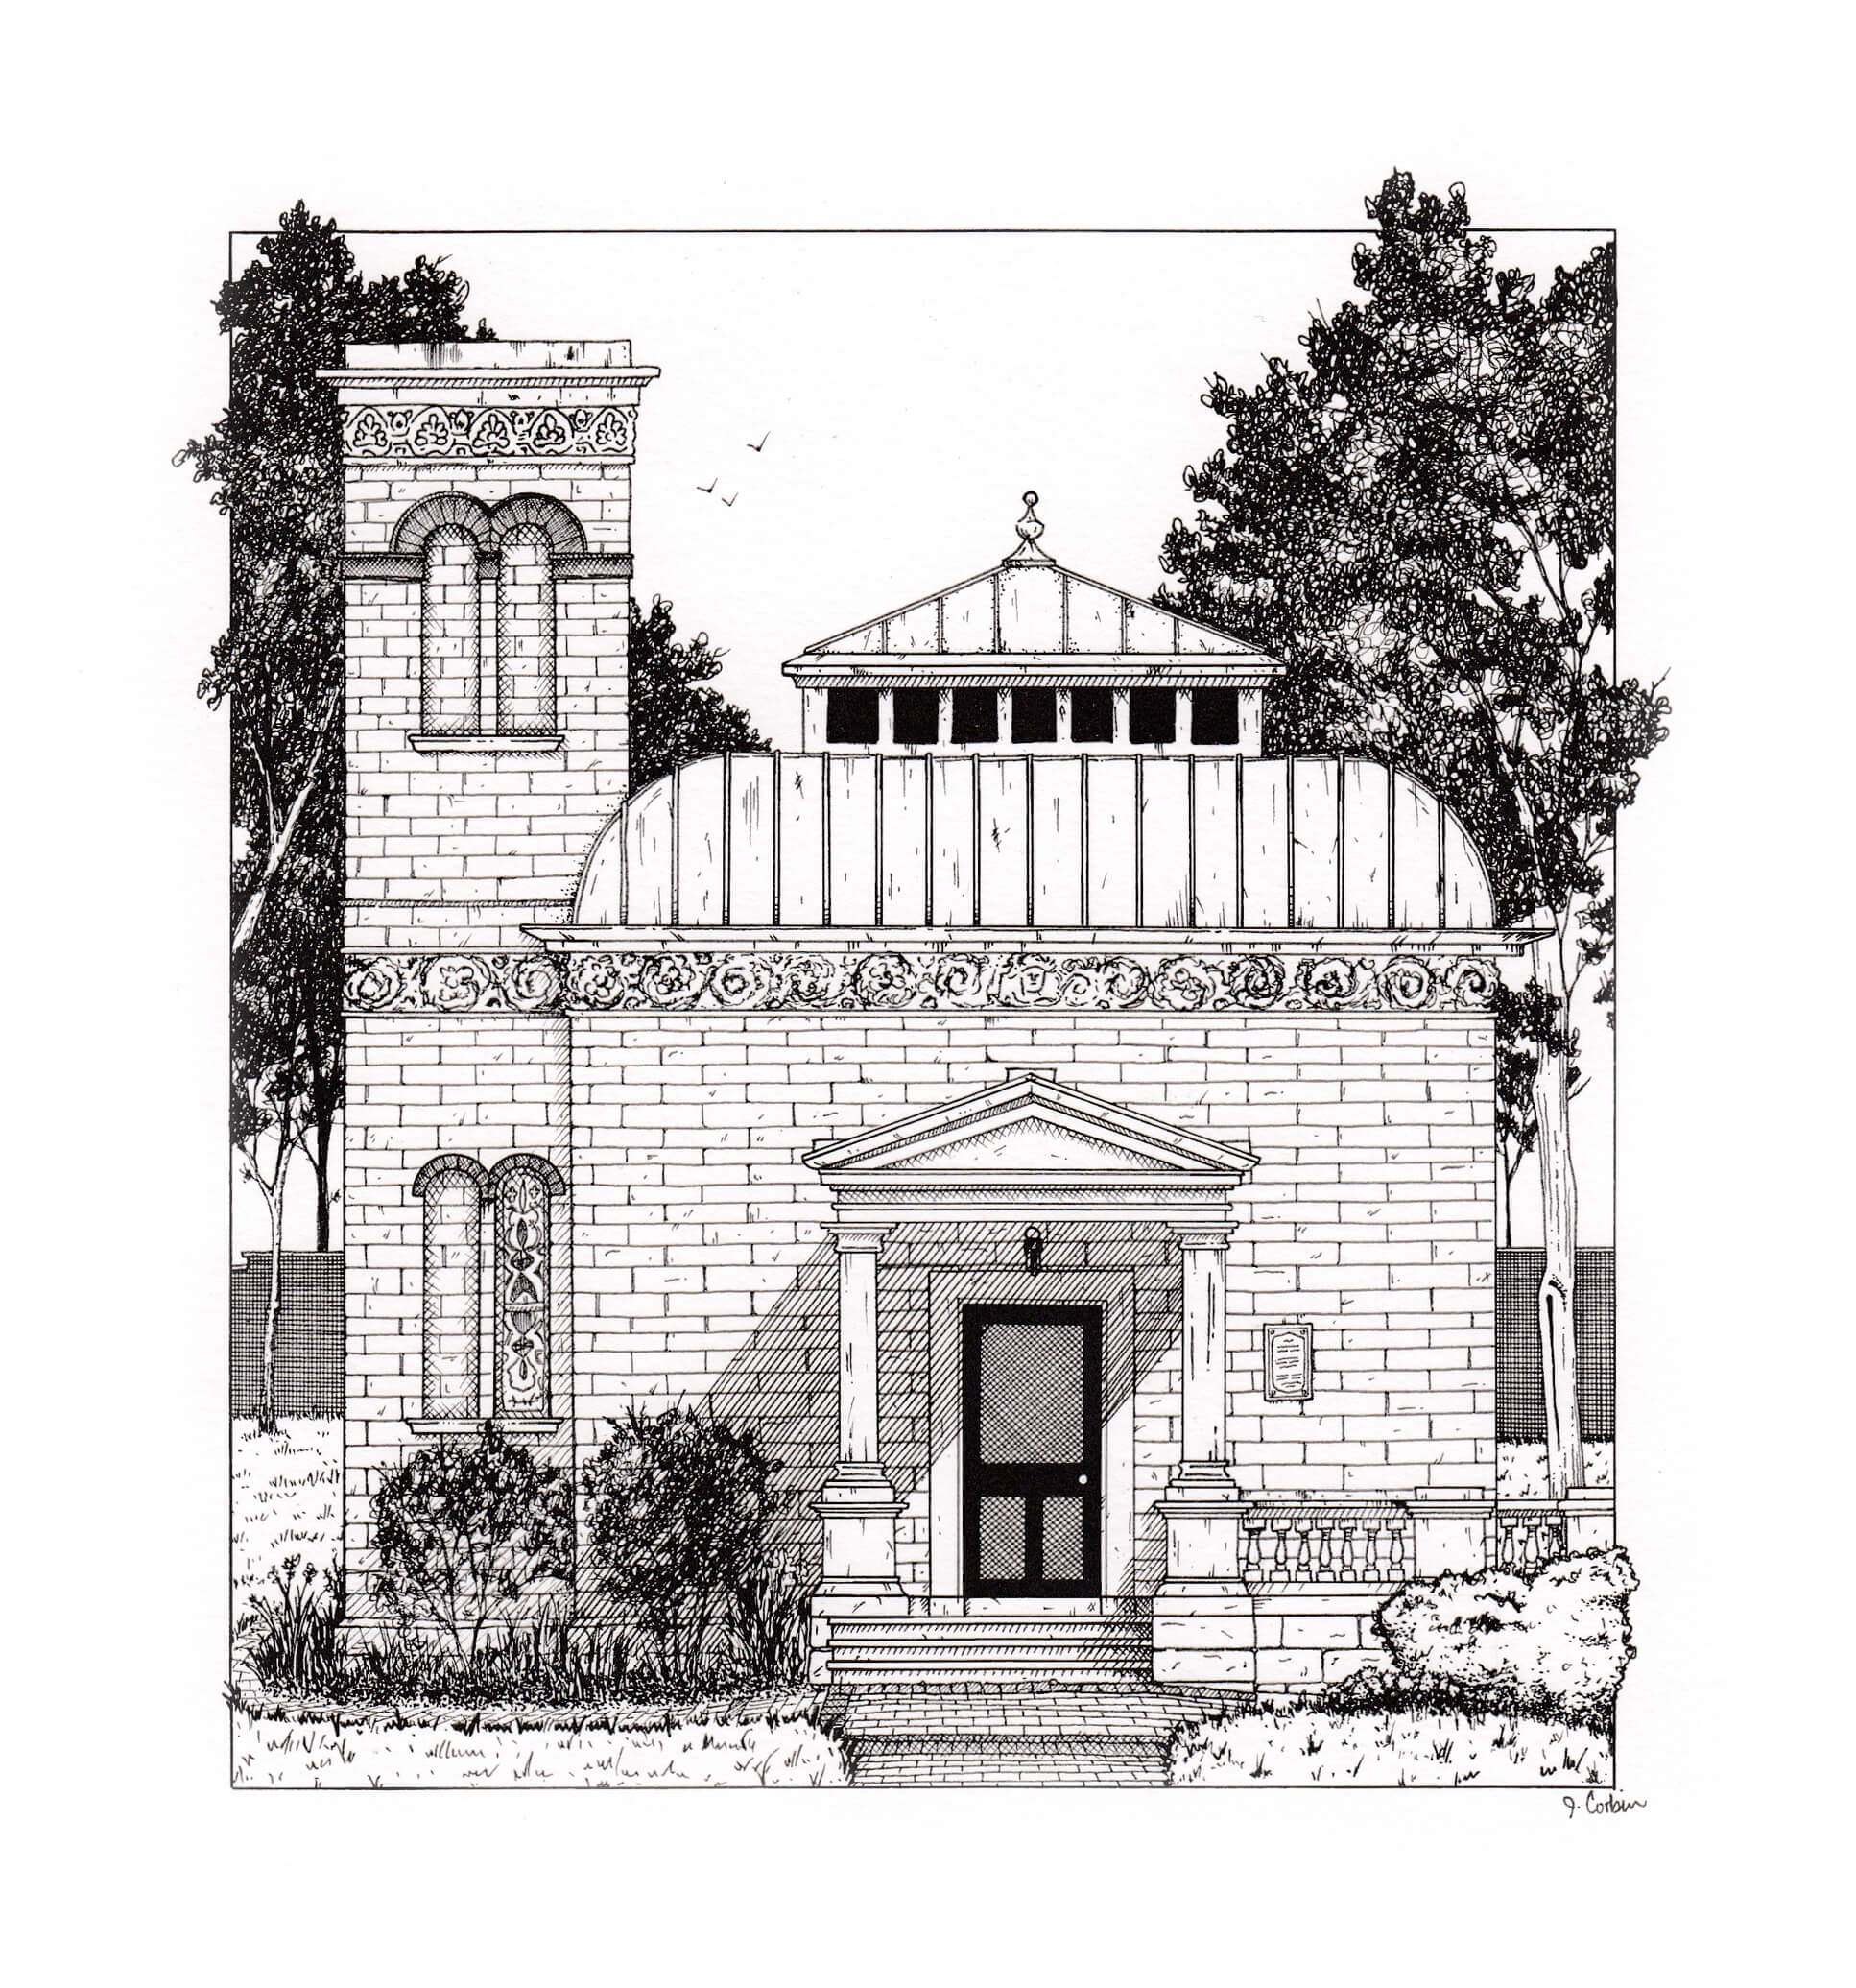 Black & white illustration of the Lew Wallace study in Crawfordsville, IN